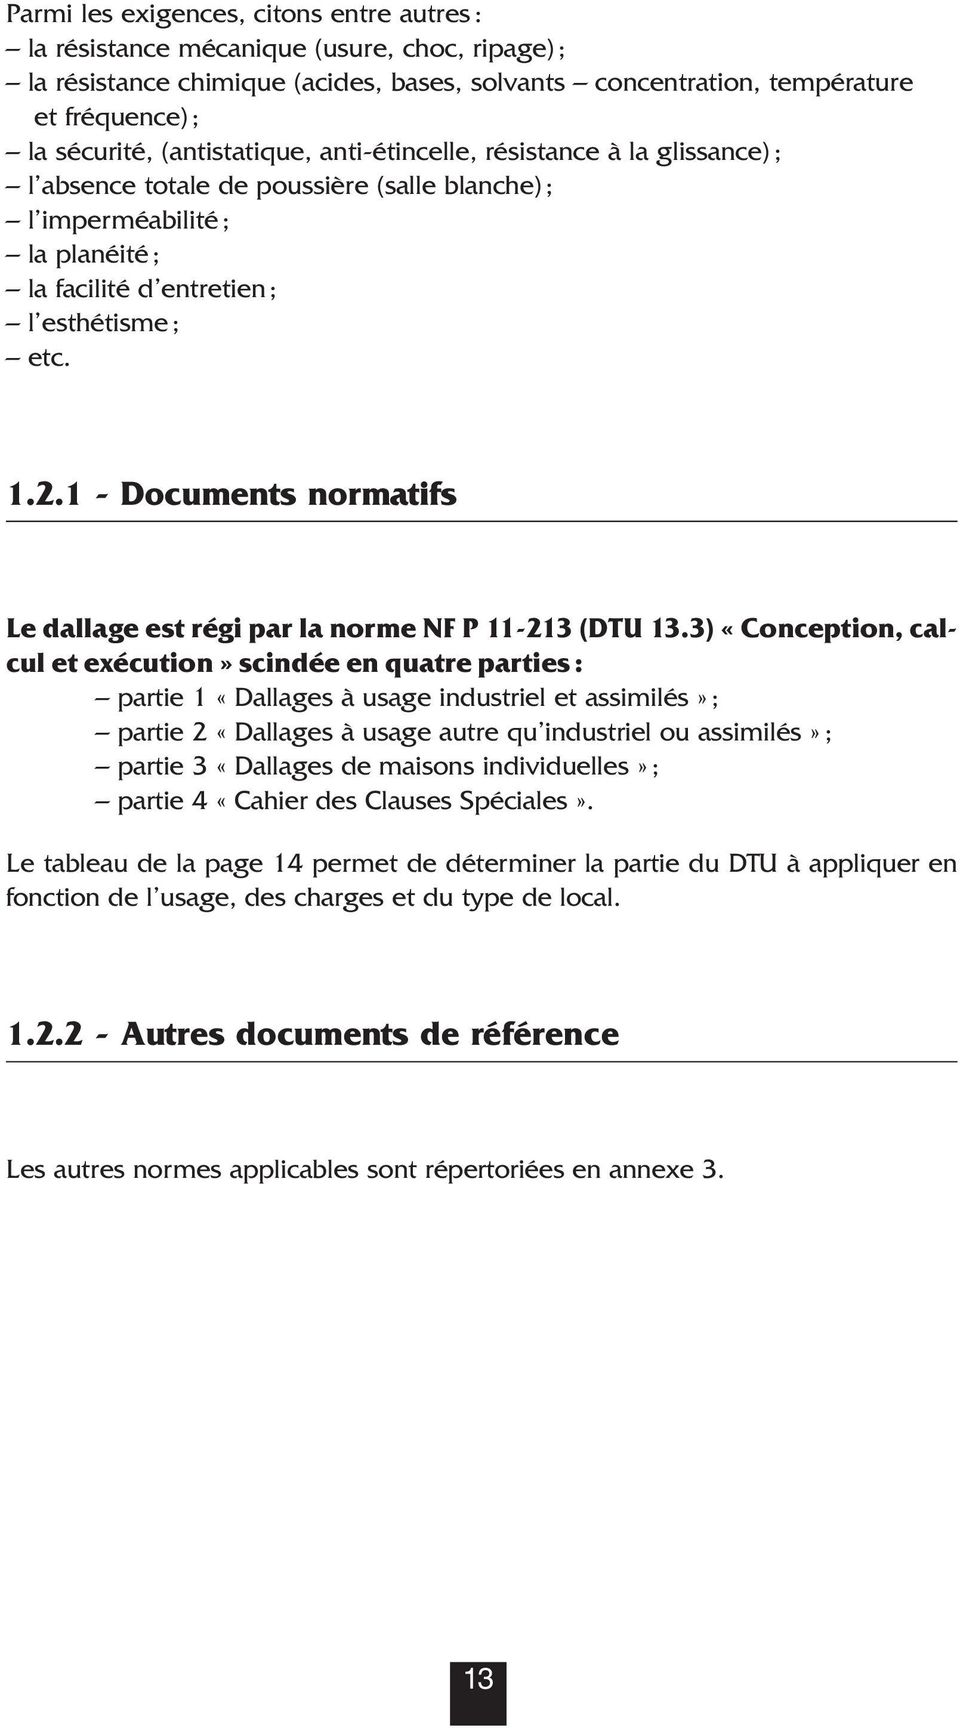 1 - Documents normatifs Le dallage est régi par la norme NF P 11-213 (DTU 13.